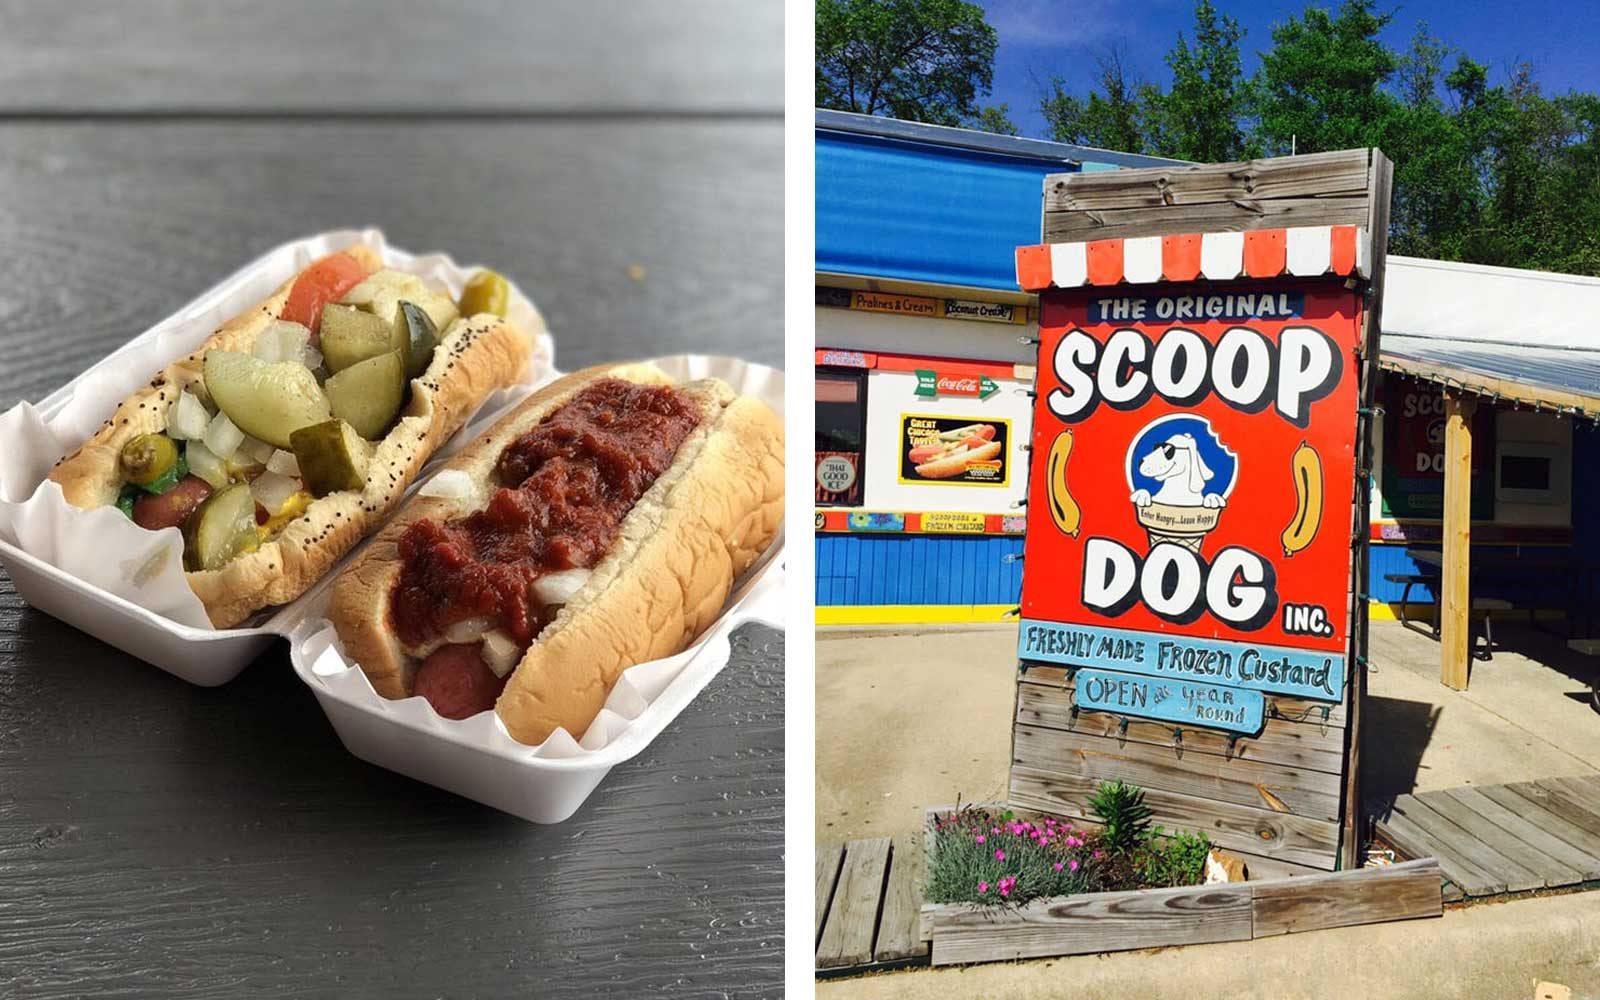 The Original ScoopDog, Arkansas